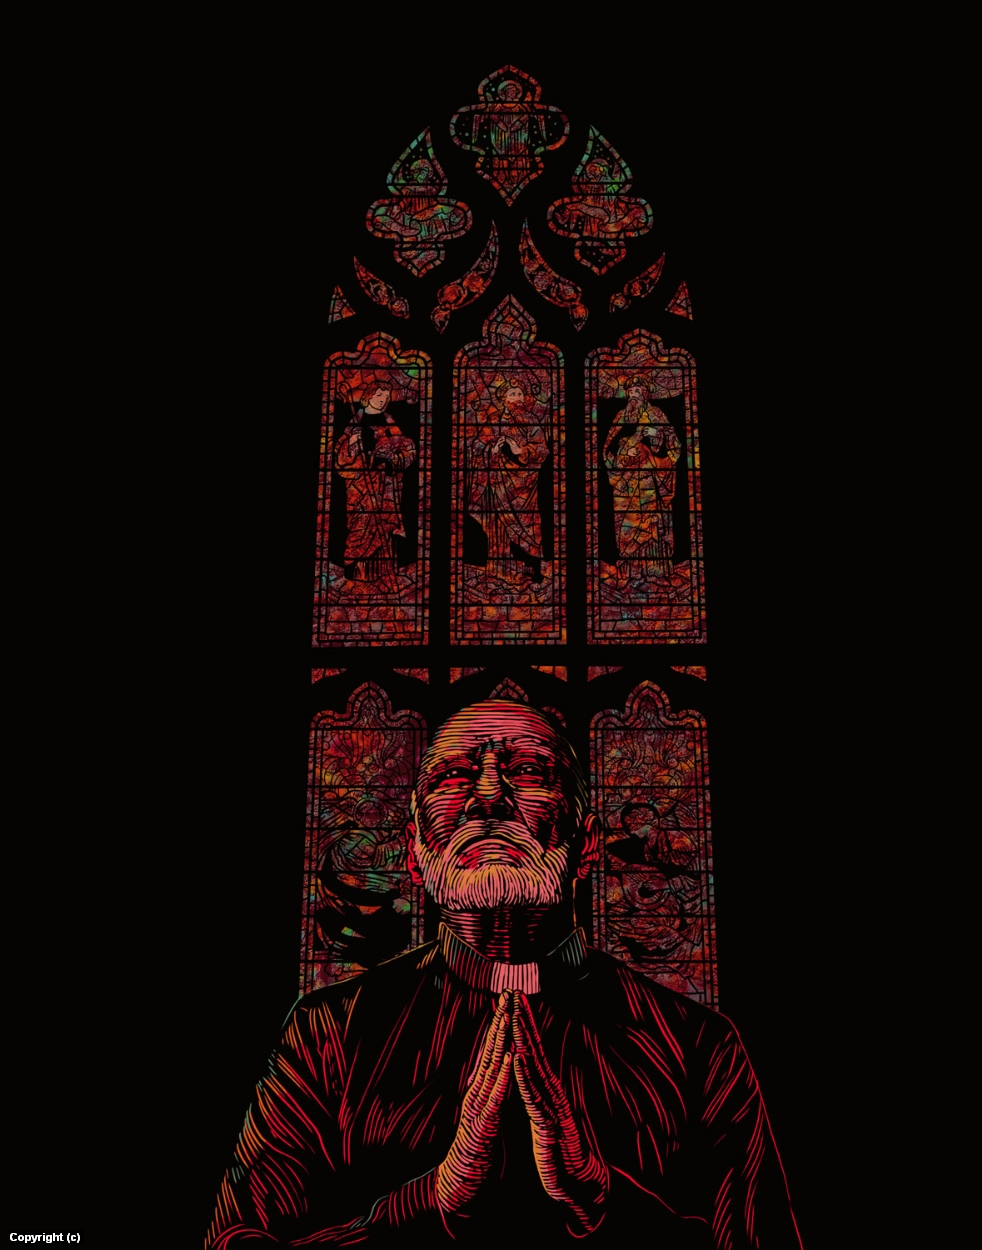 The Phantom Priest Artwork by Douglas Bell